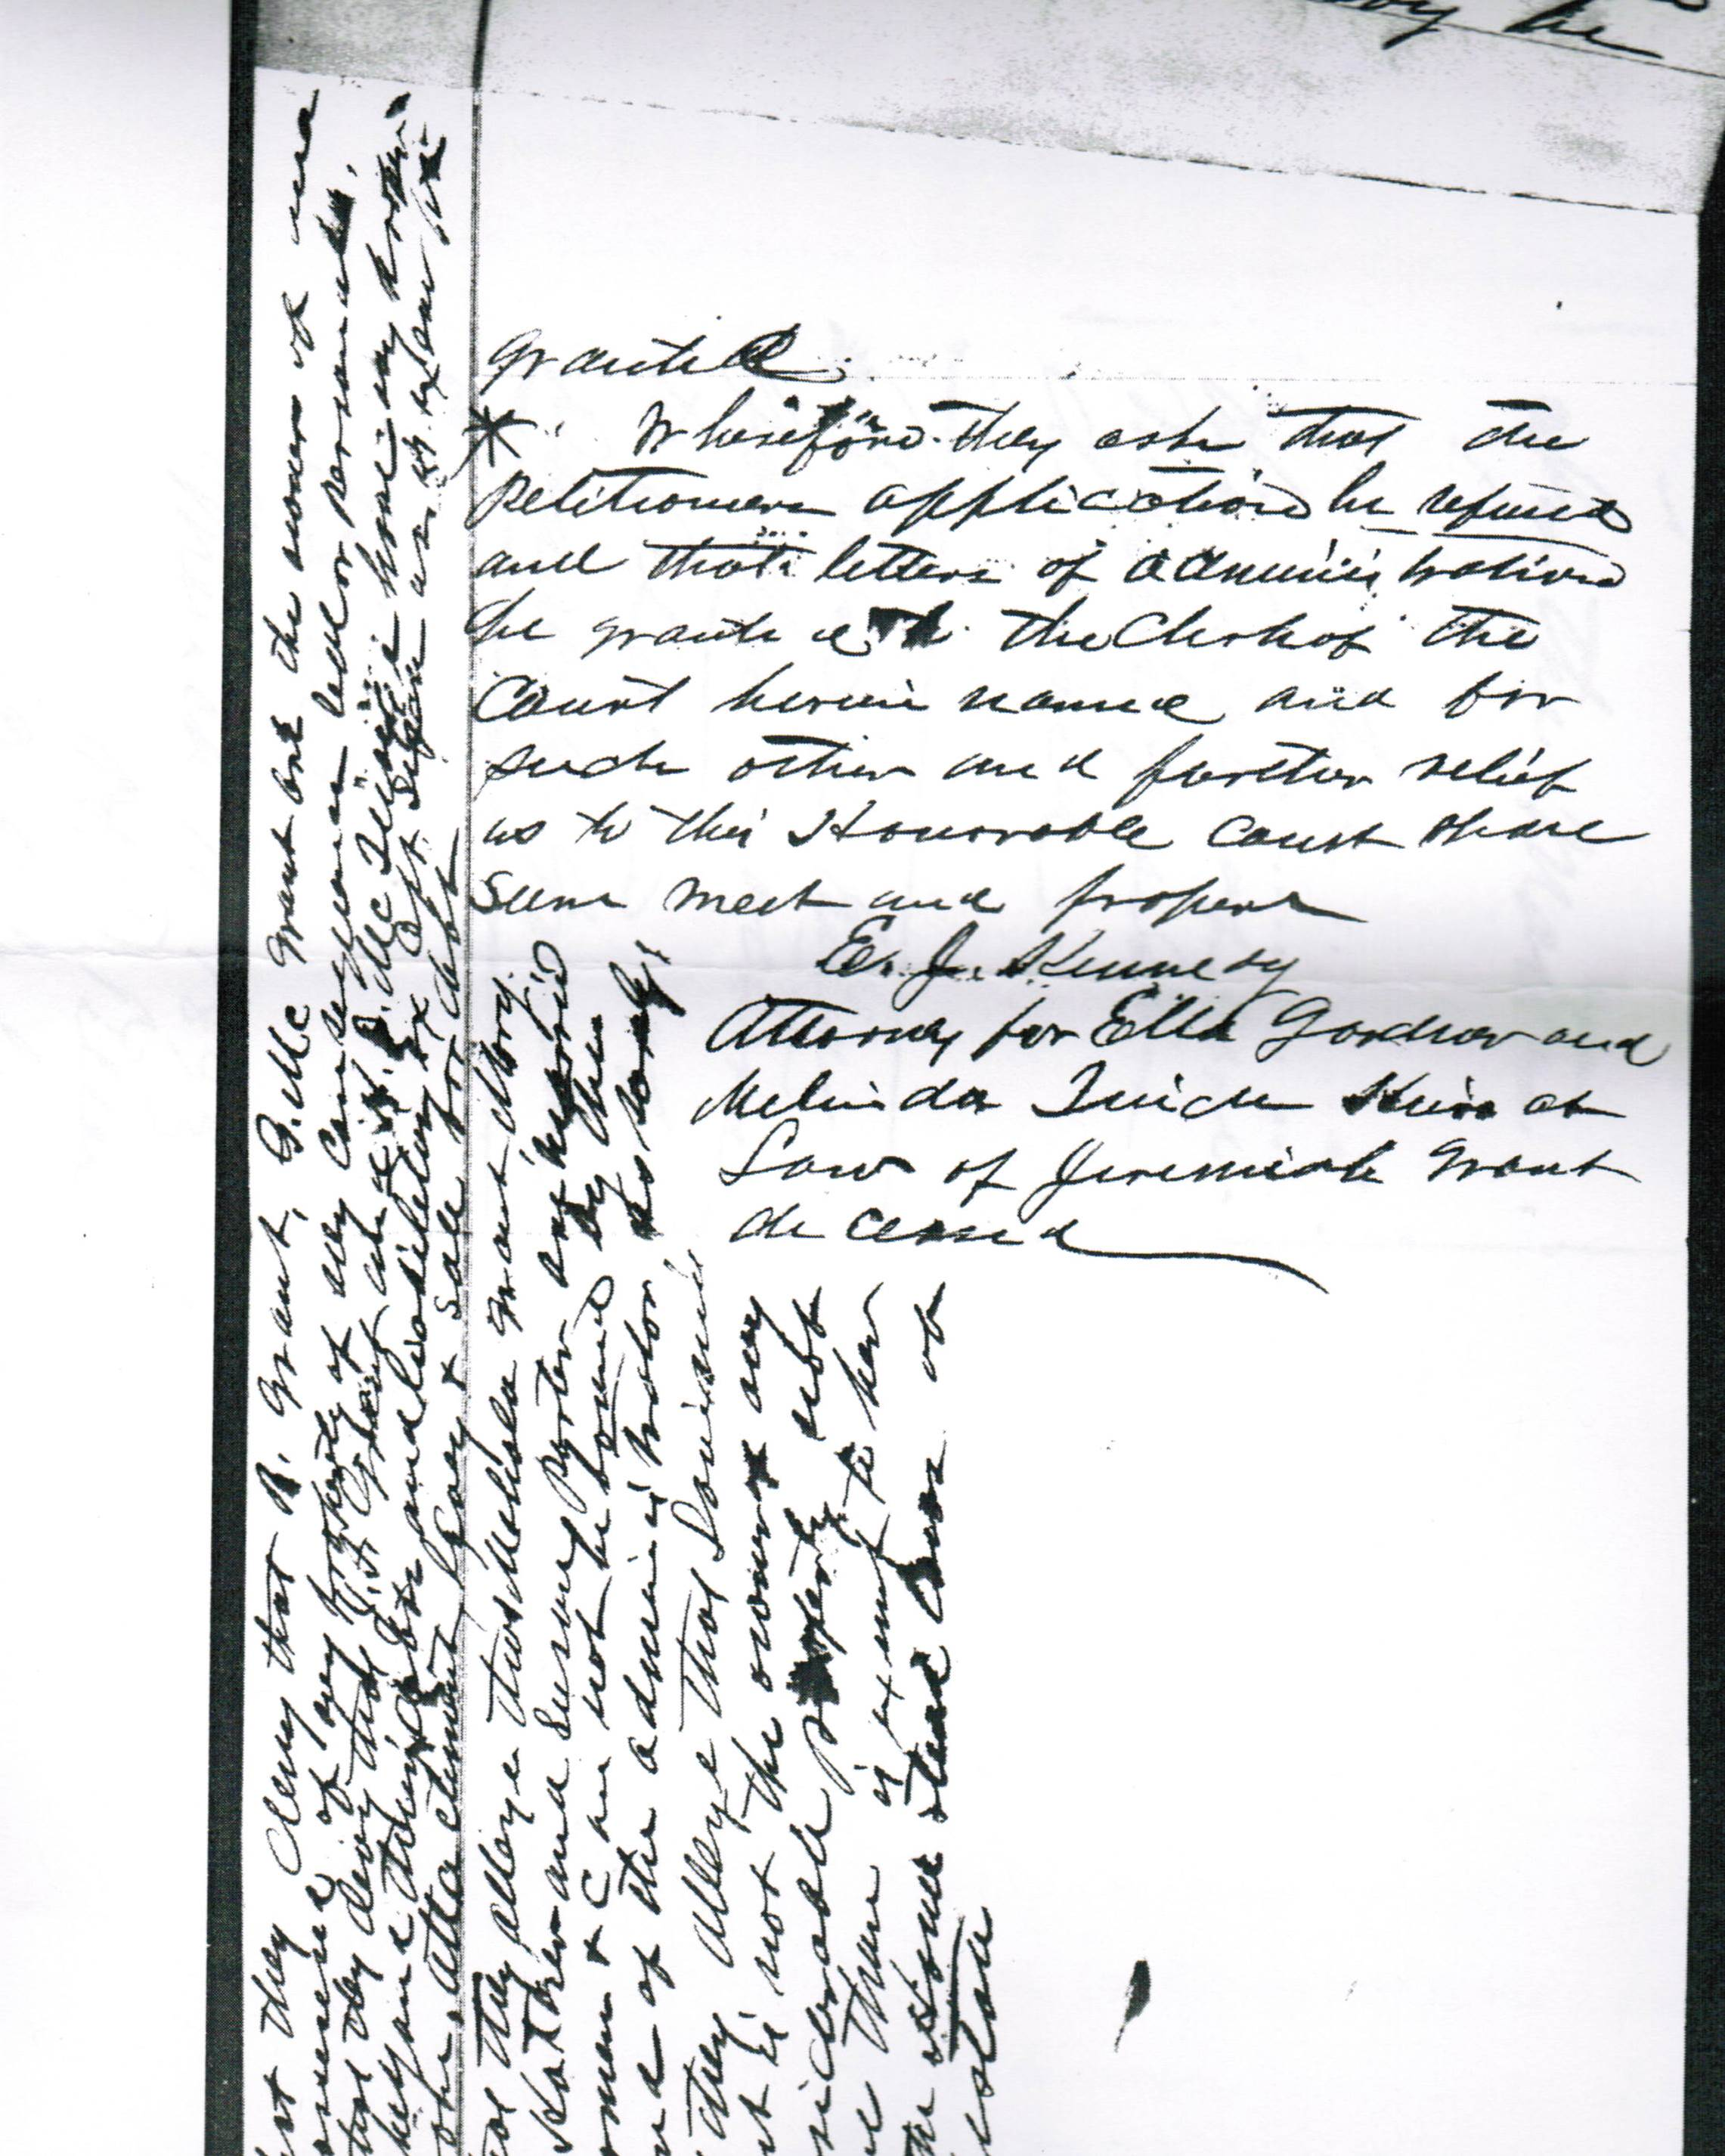 B&W partial scan of a page from an 1893 probate record in South Carolina